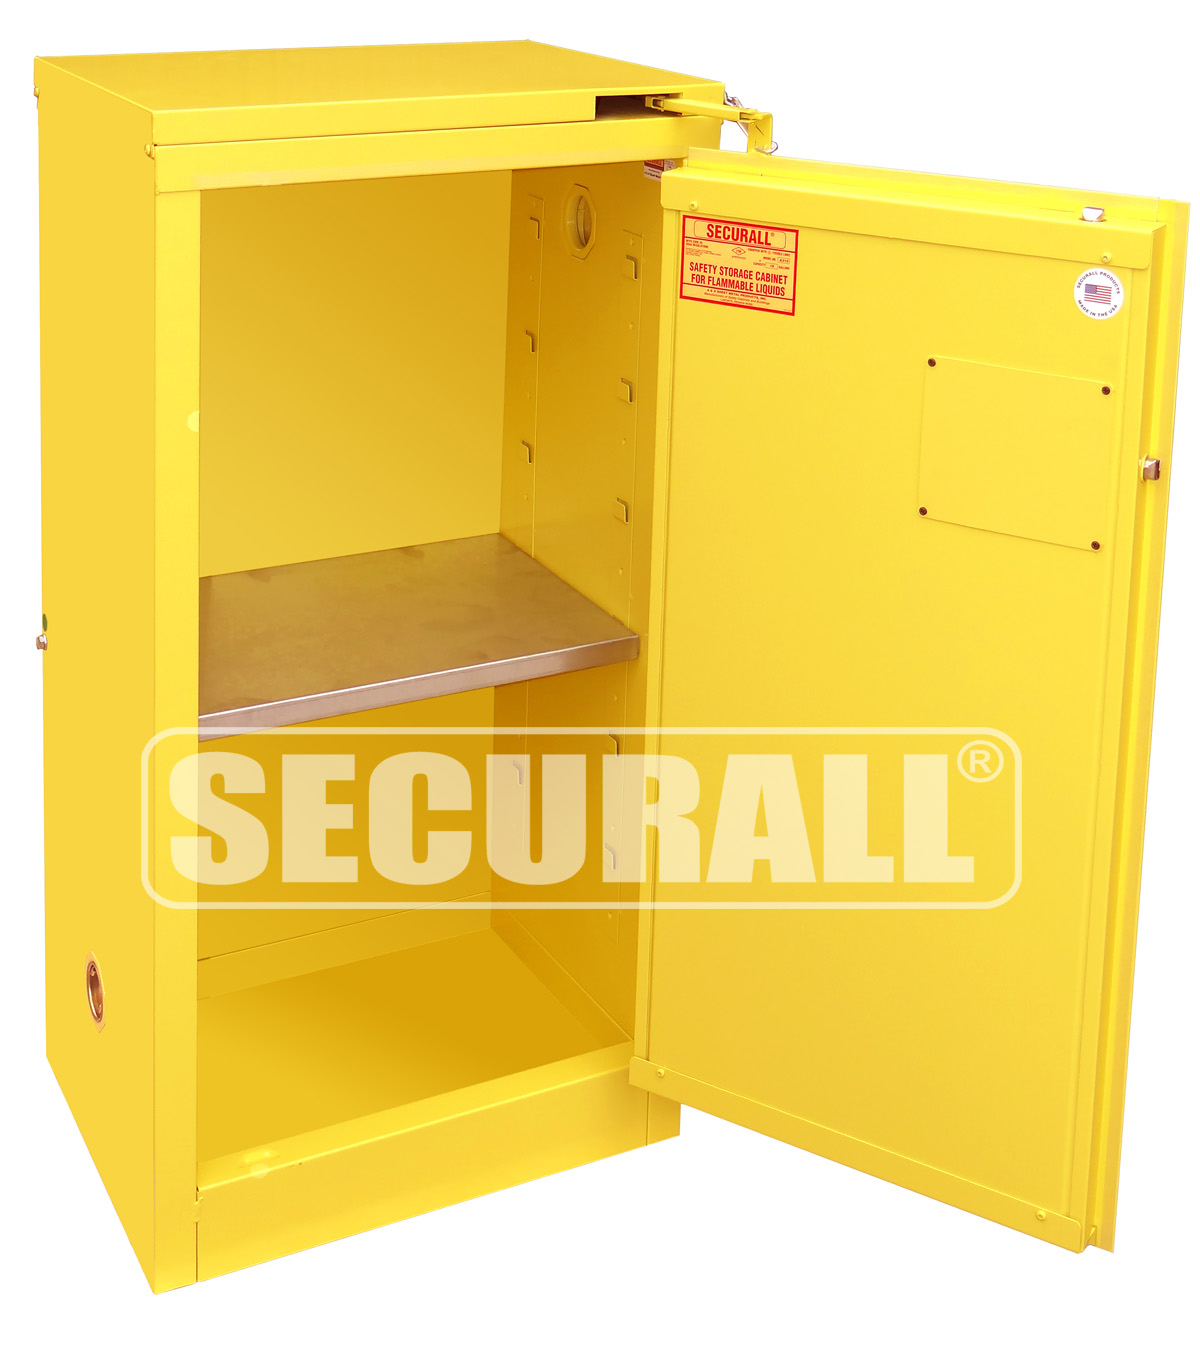 SECURALL® Flammable Storage Flammable Cabinet Flammable Storage Cabinets Flammable liquid storage Hazardous Material Storage Cabinets u0026 Buildings  sc 1 st  SECURALL & SECURALL®: Flammable Storage Flammable Cabinet Flammable Storage ...